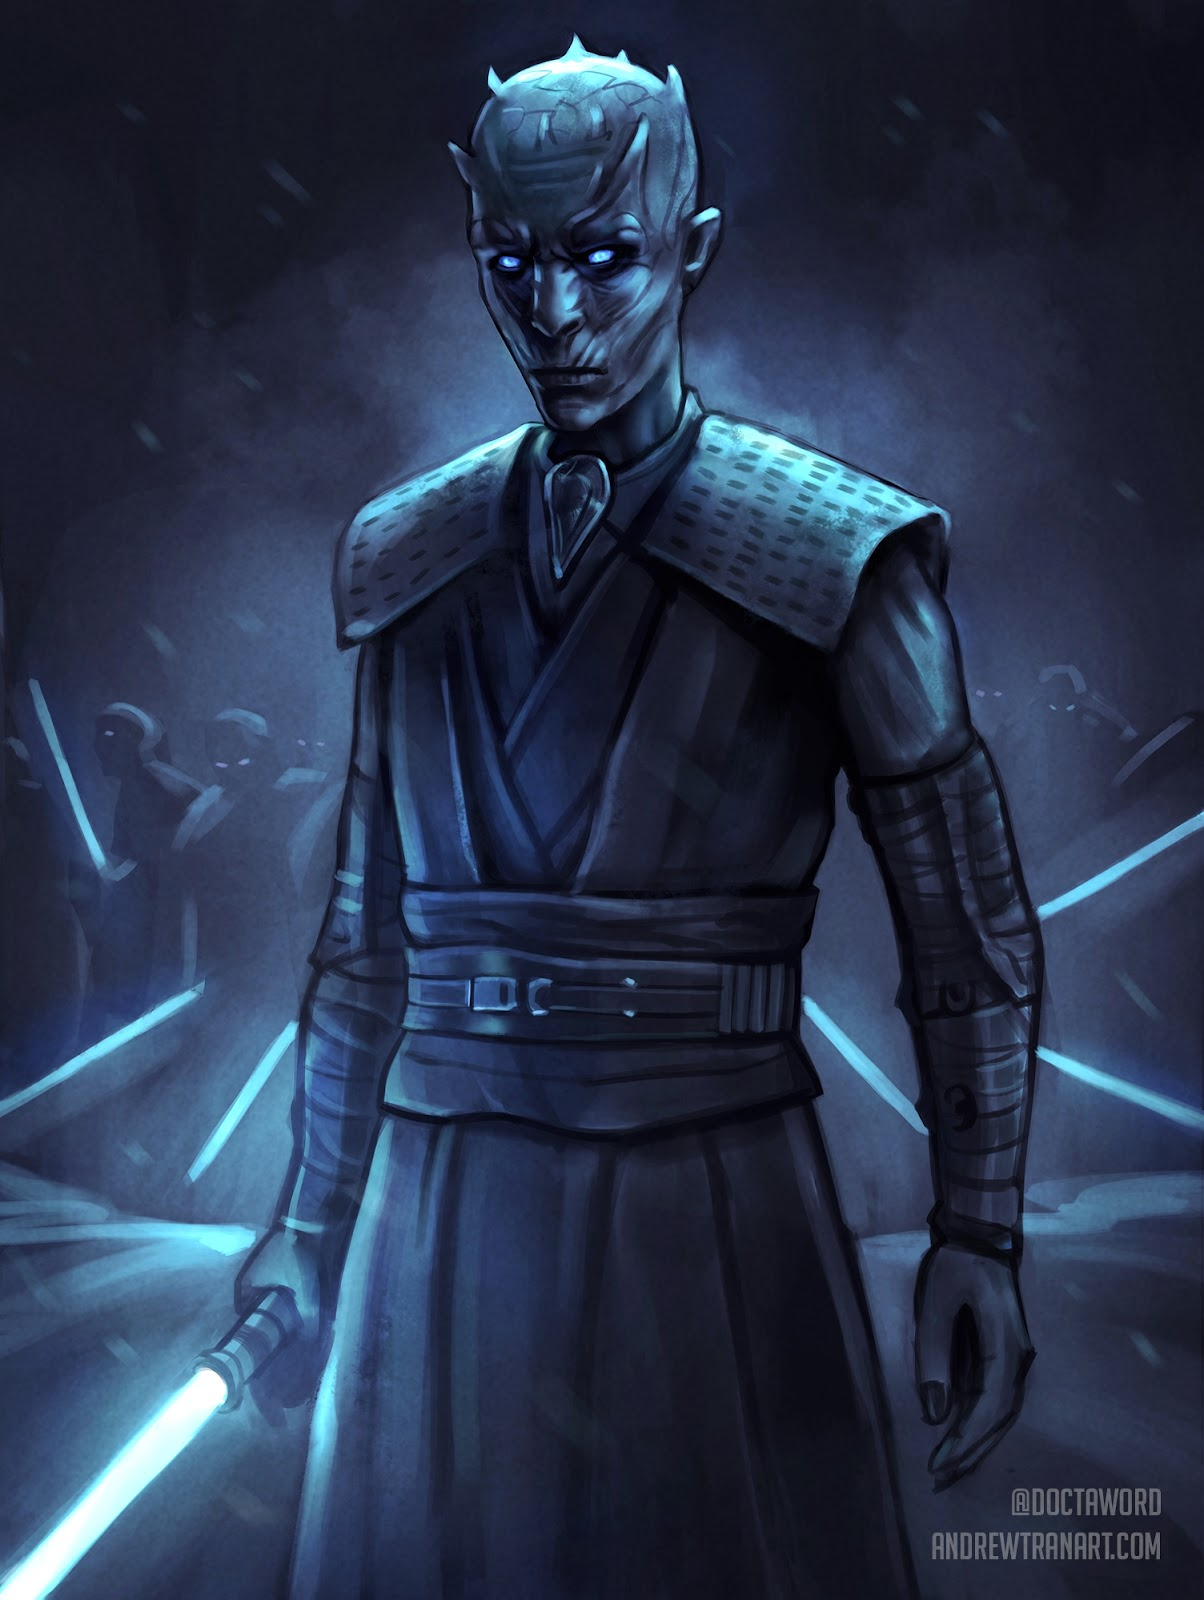 06-The-Night-King-Richard-Brake-Andrew-D-Tran-Doctaword-Star-Wars-and-Game-of-Thrones-Mashup-www-designstack-co